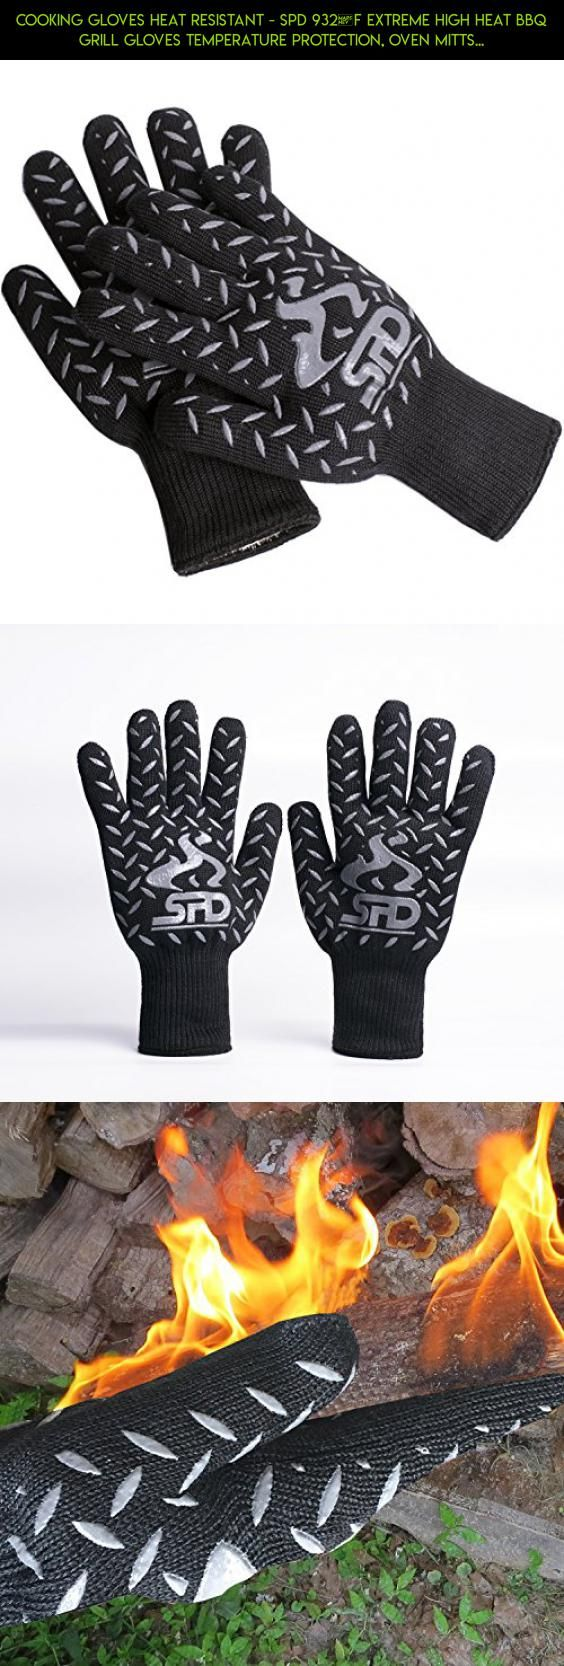 Cooking Gloves Heat Resistant Spd 932 F Extreme High Heat Bbq